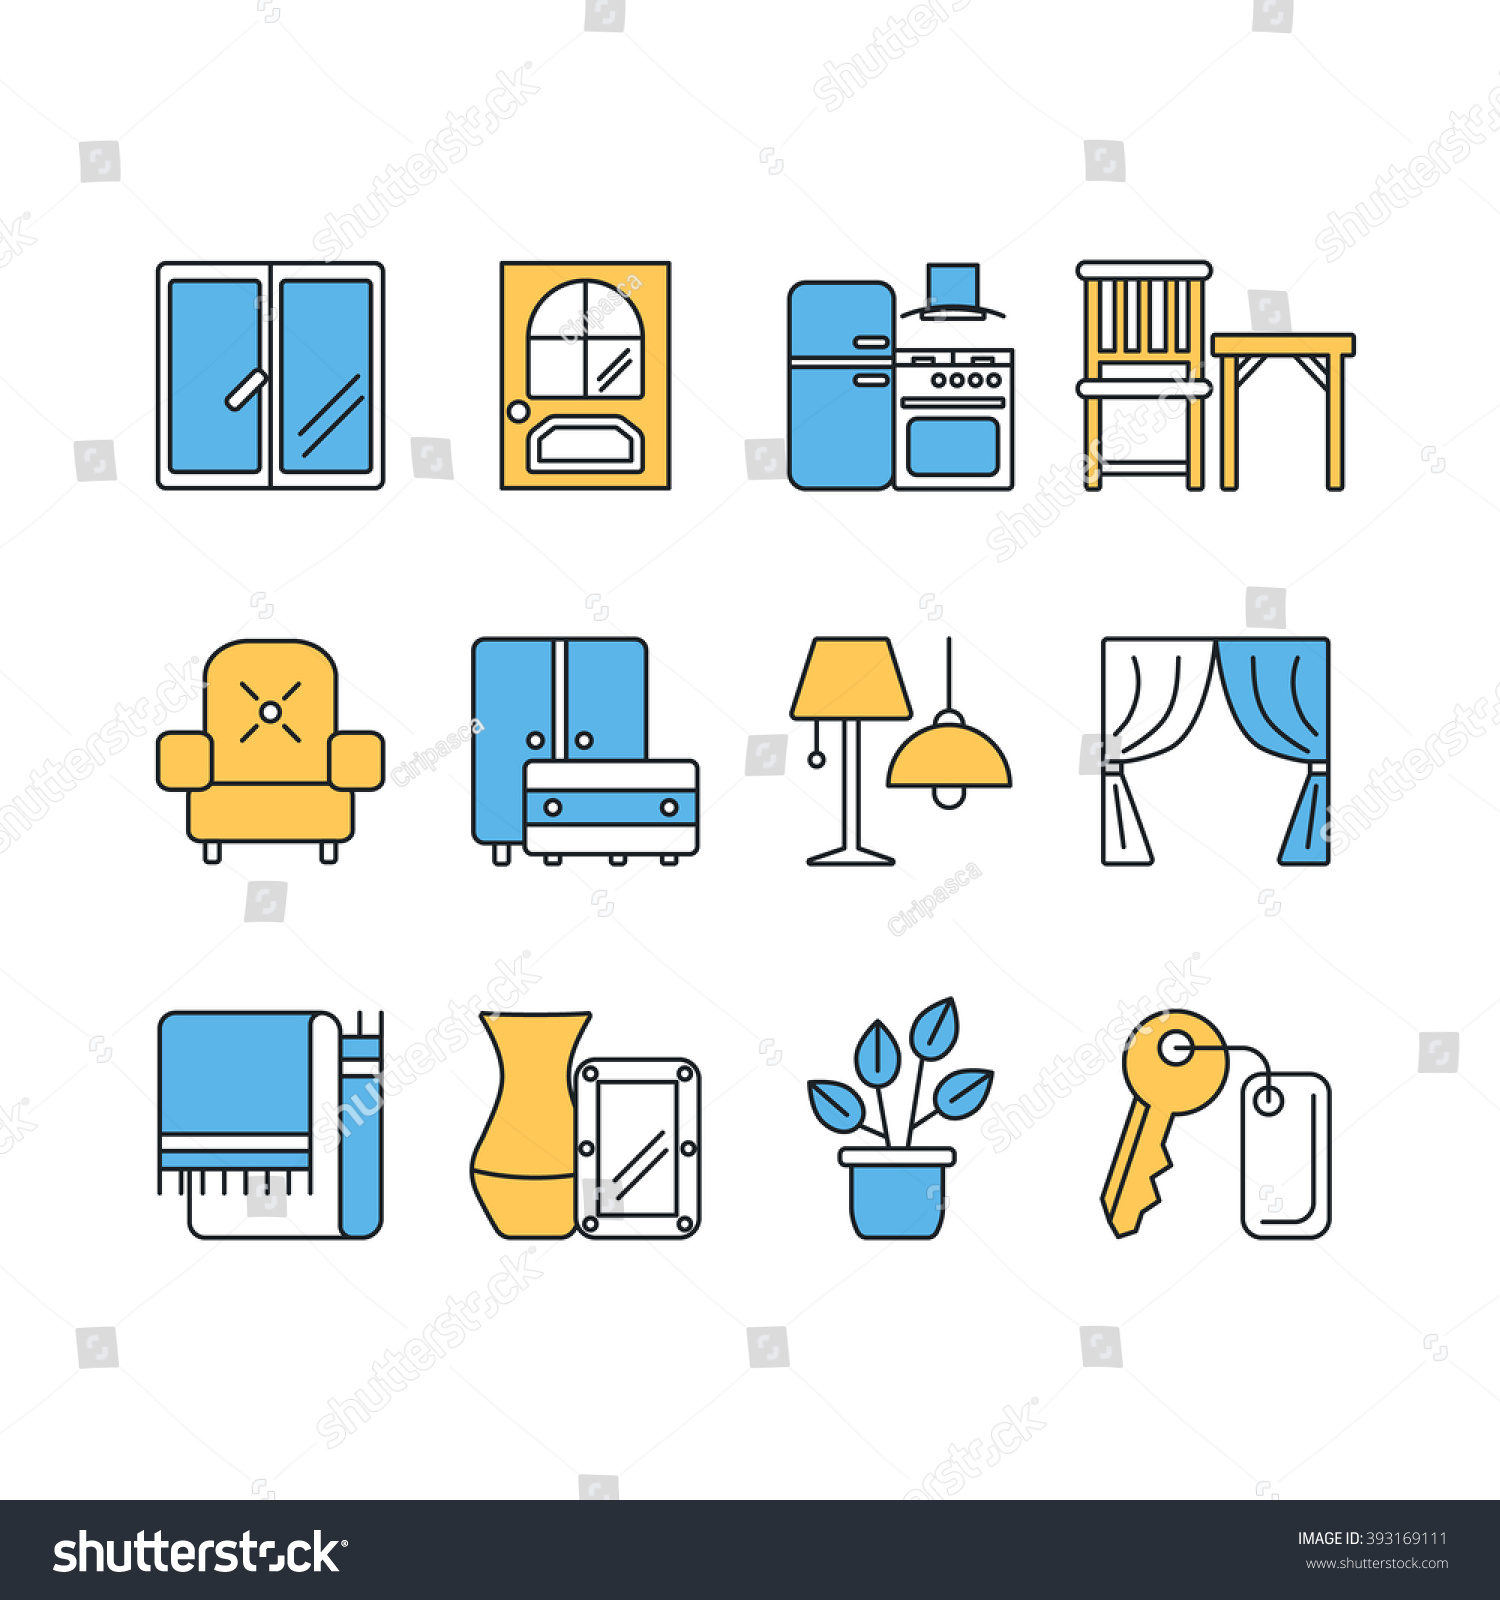 Interior Design Furniture Symbols ~ Symbols for interior design furniture